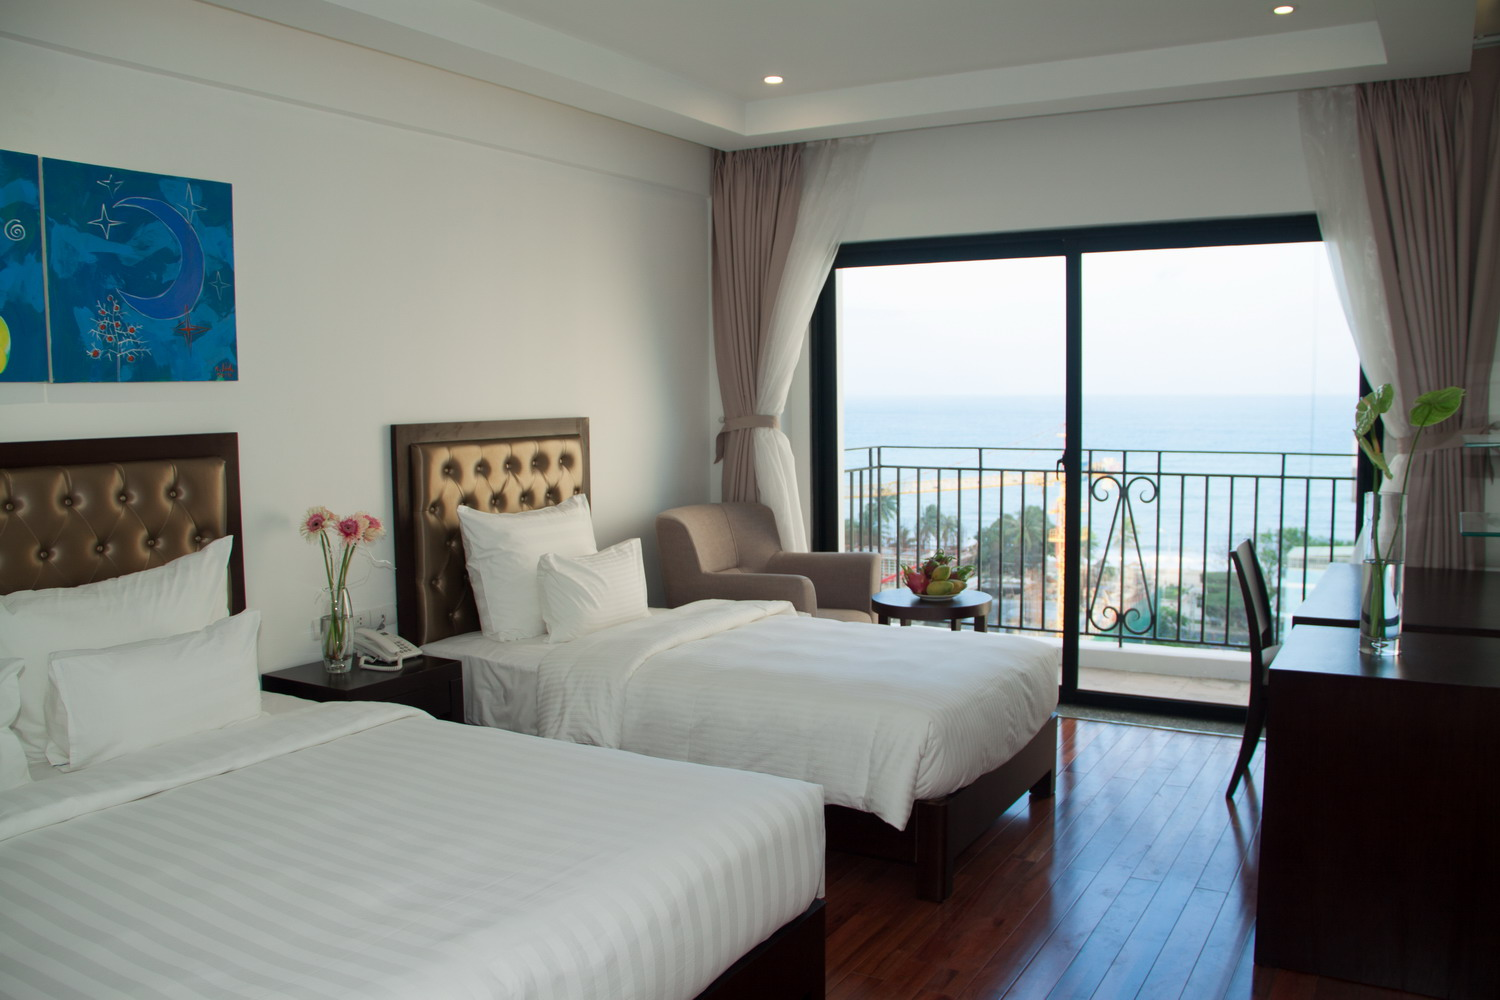 Legend Sea Hotel, brand new 4-star hotel in Nha Trang